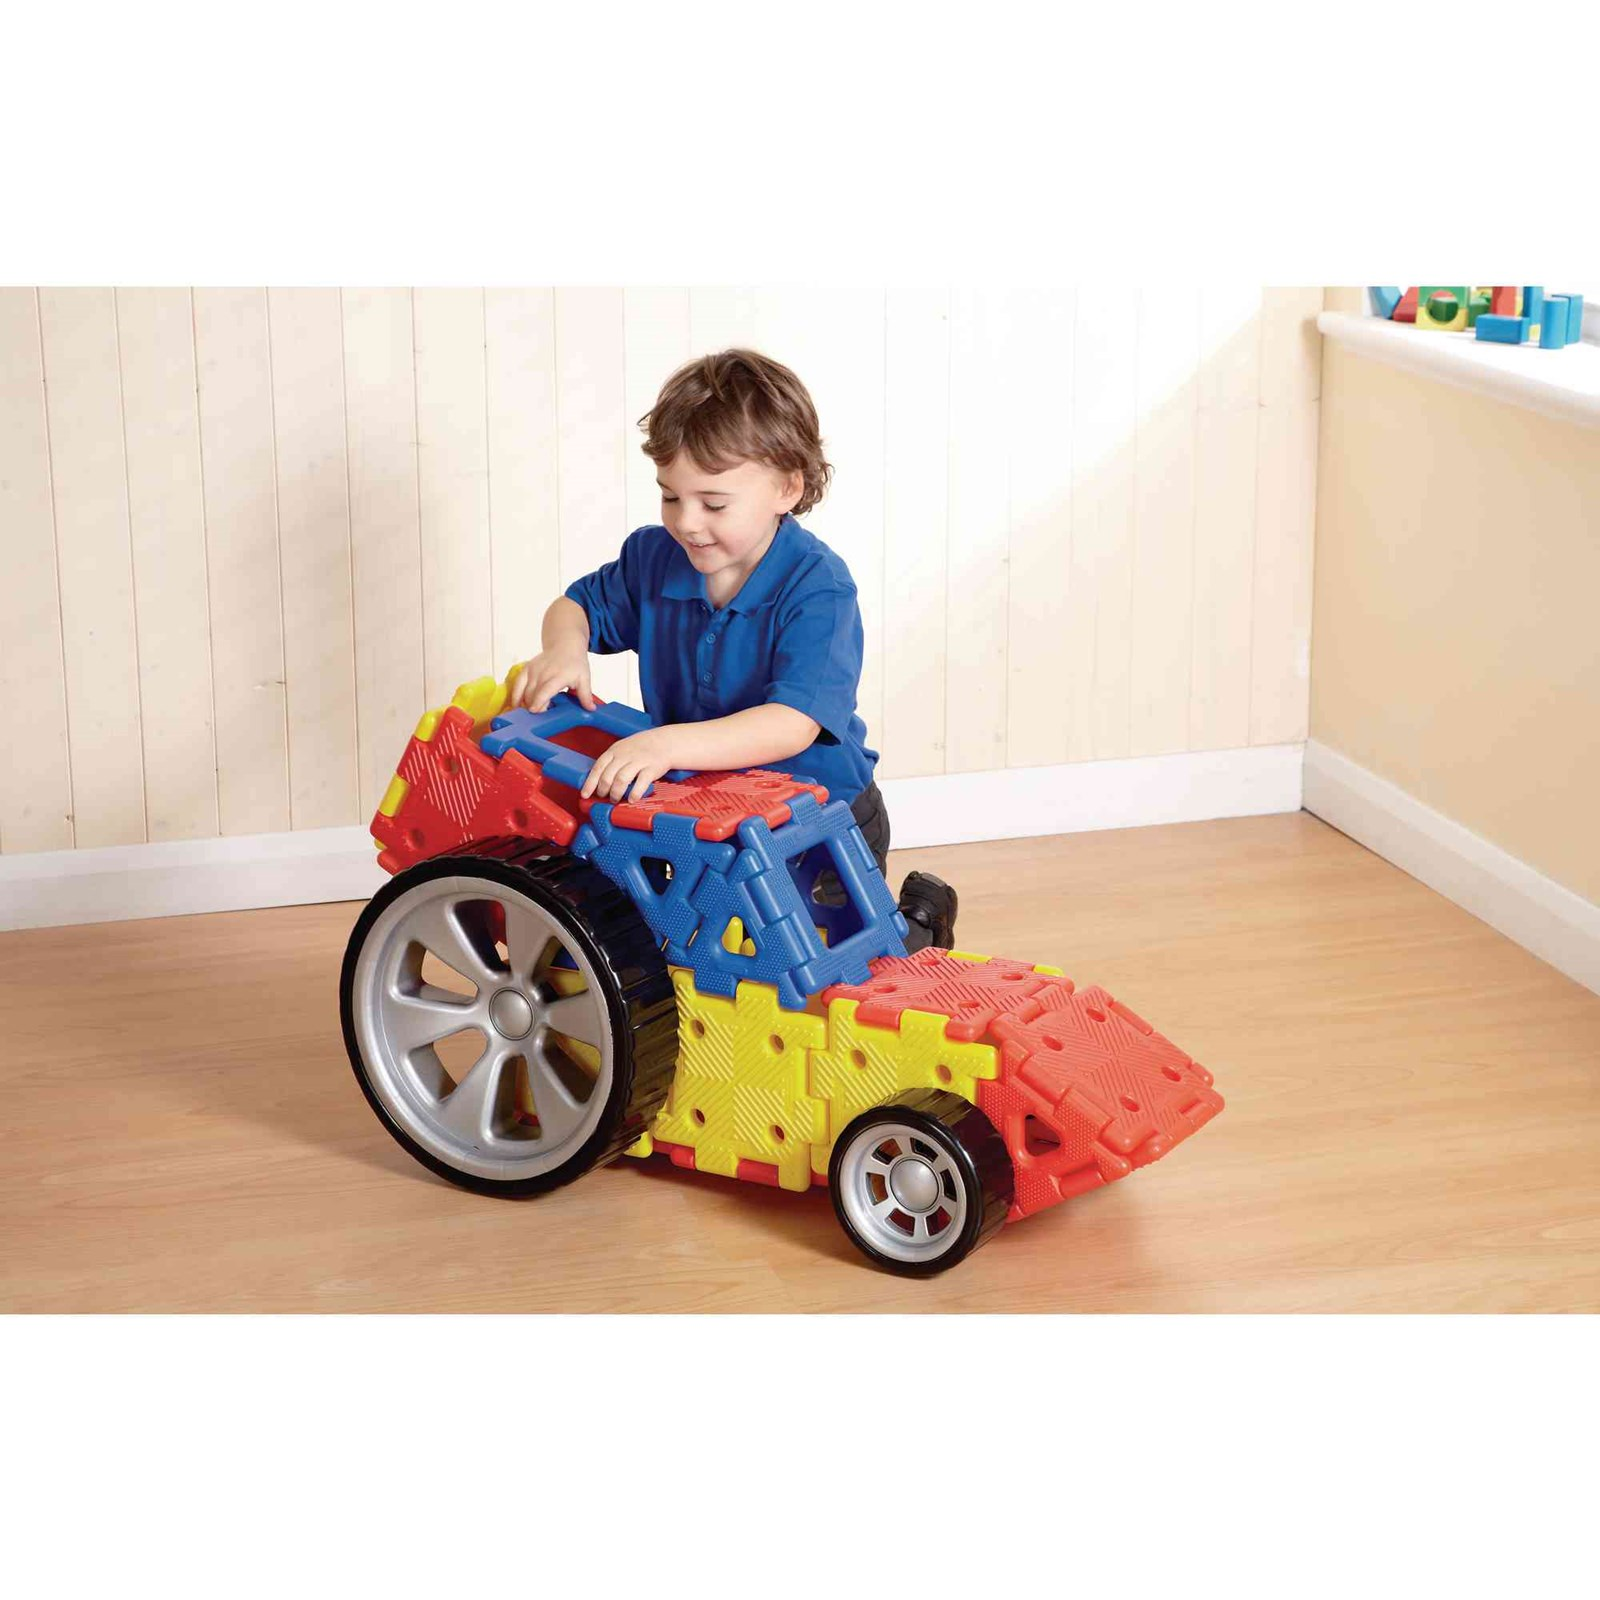 Giant Polydron Vehicle Set - Pack of 32